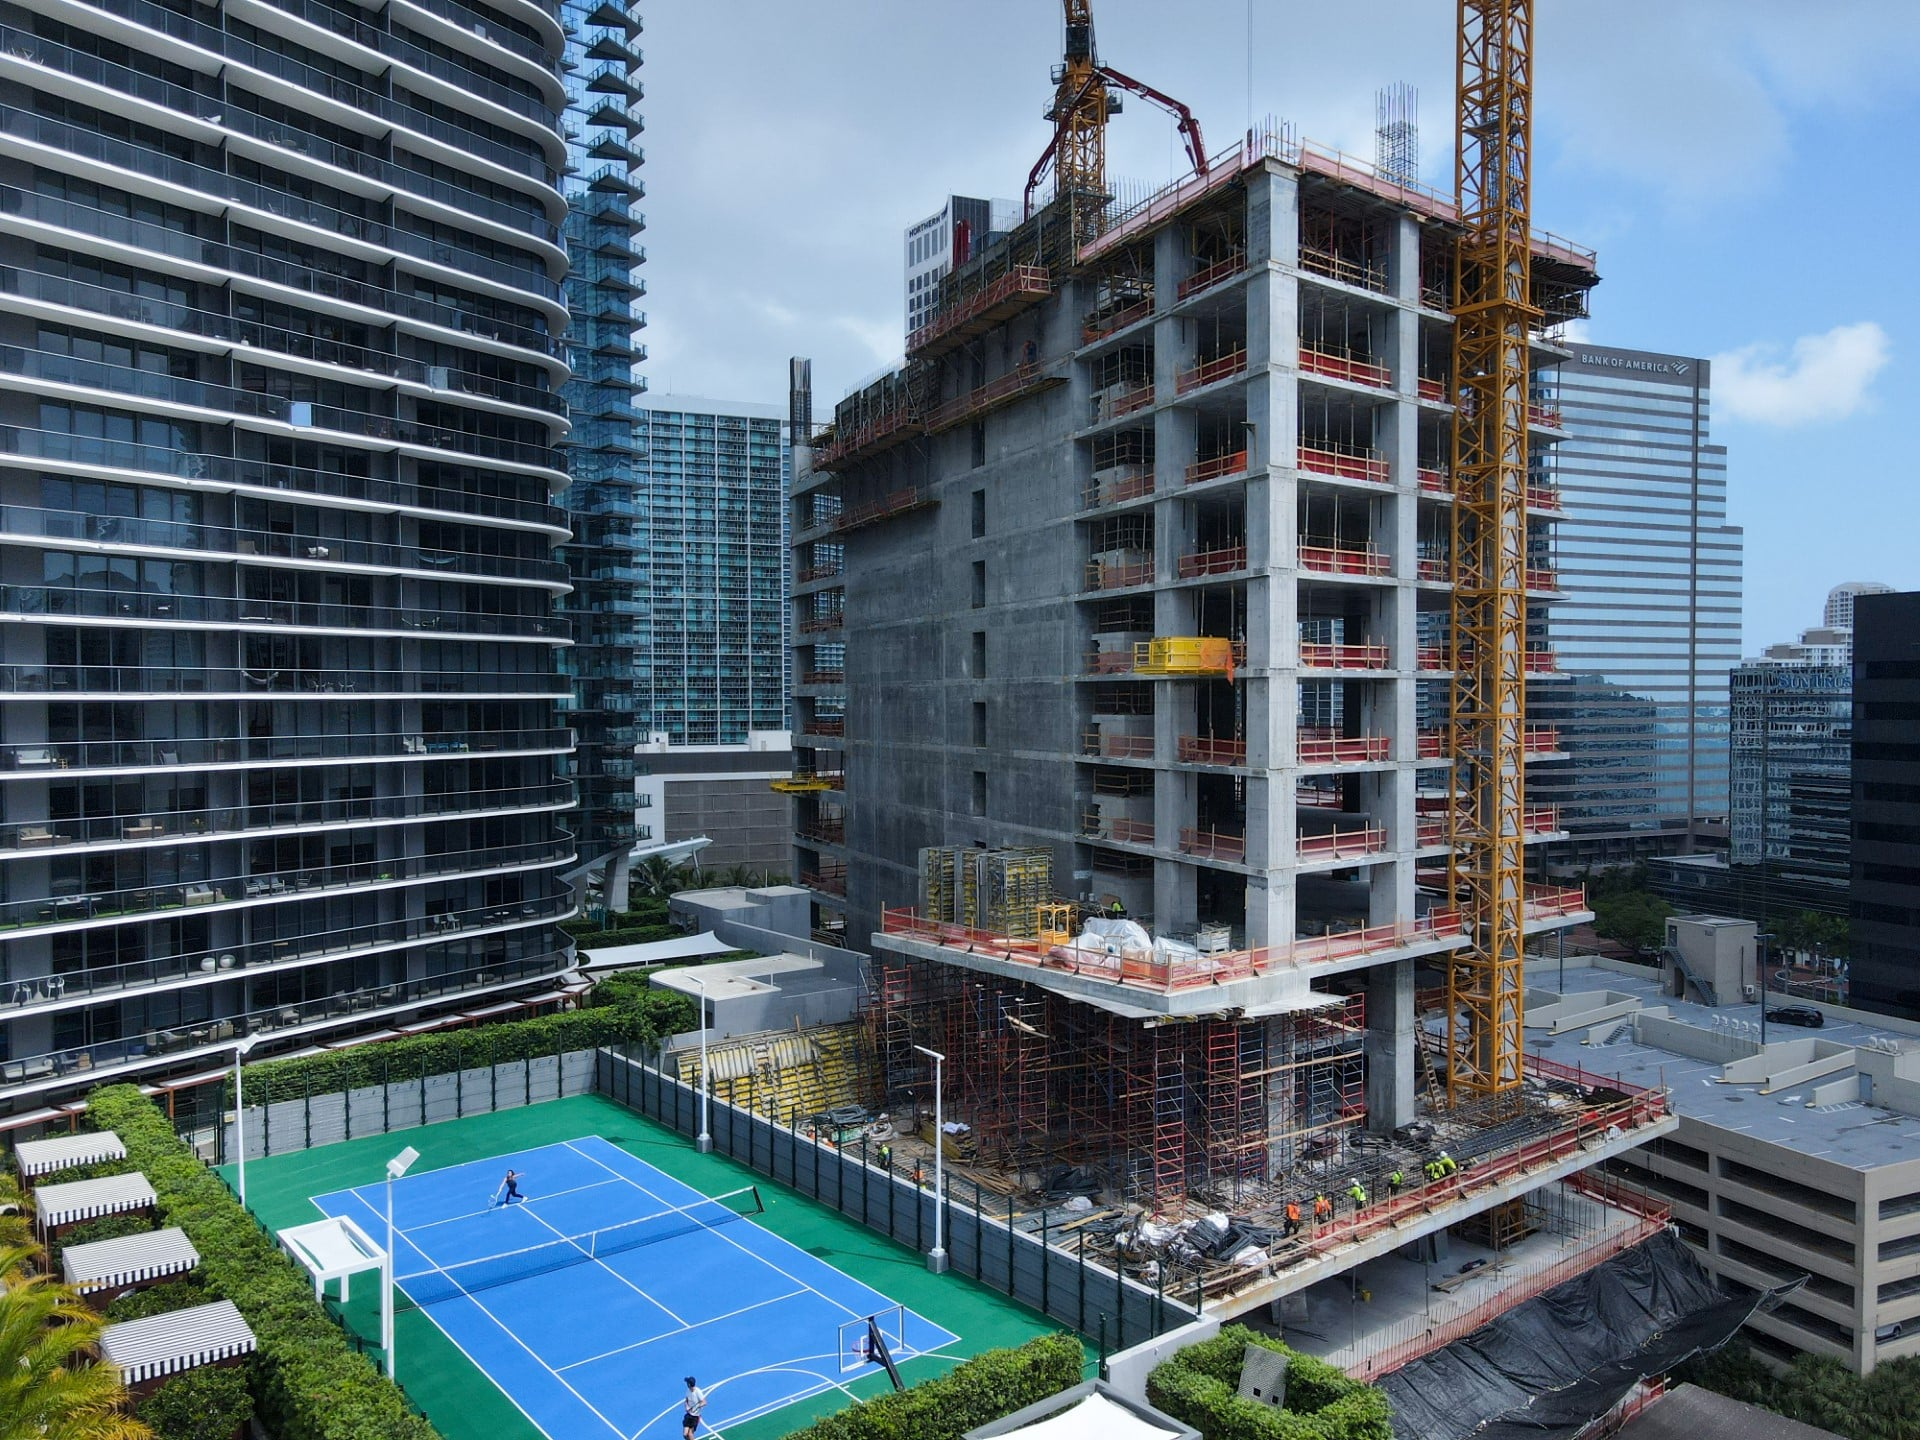 57-Story 830 Brickell Approaches The Halfway Mark, With Active Negotiations Underway For Office Space